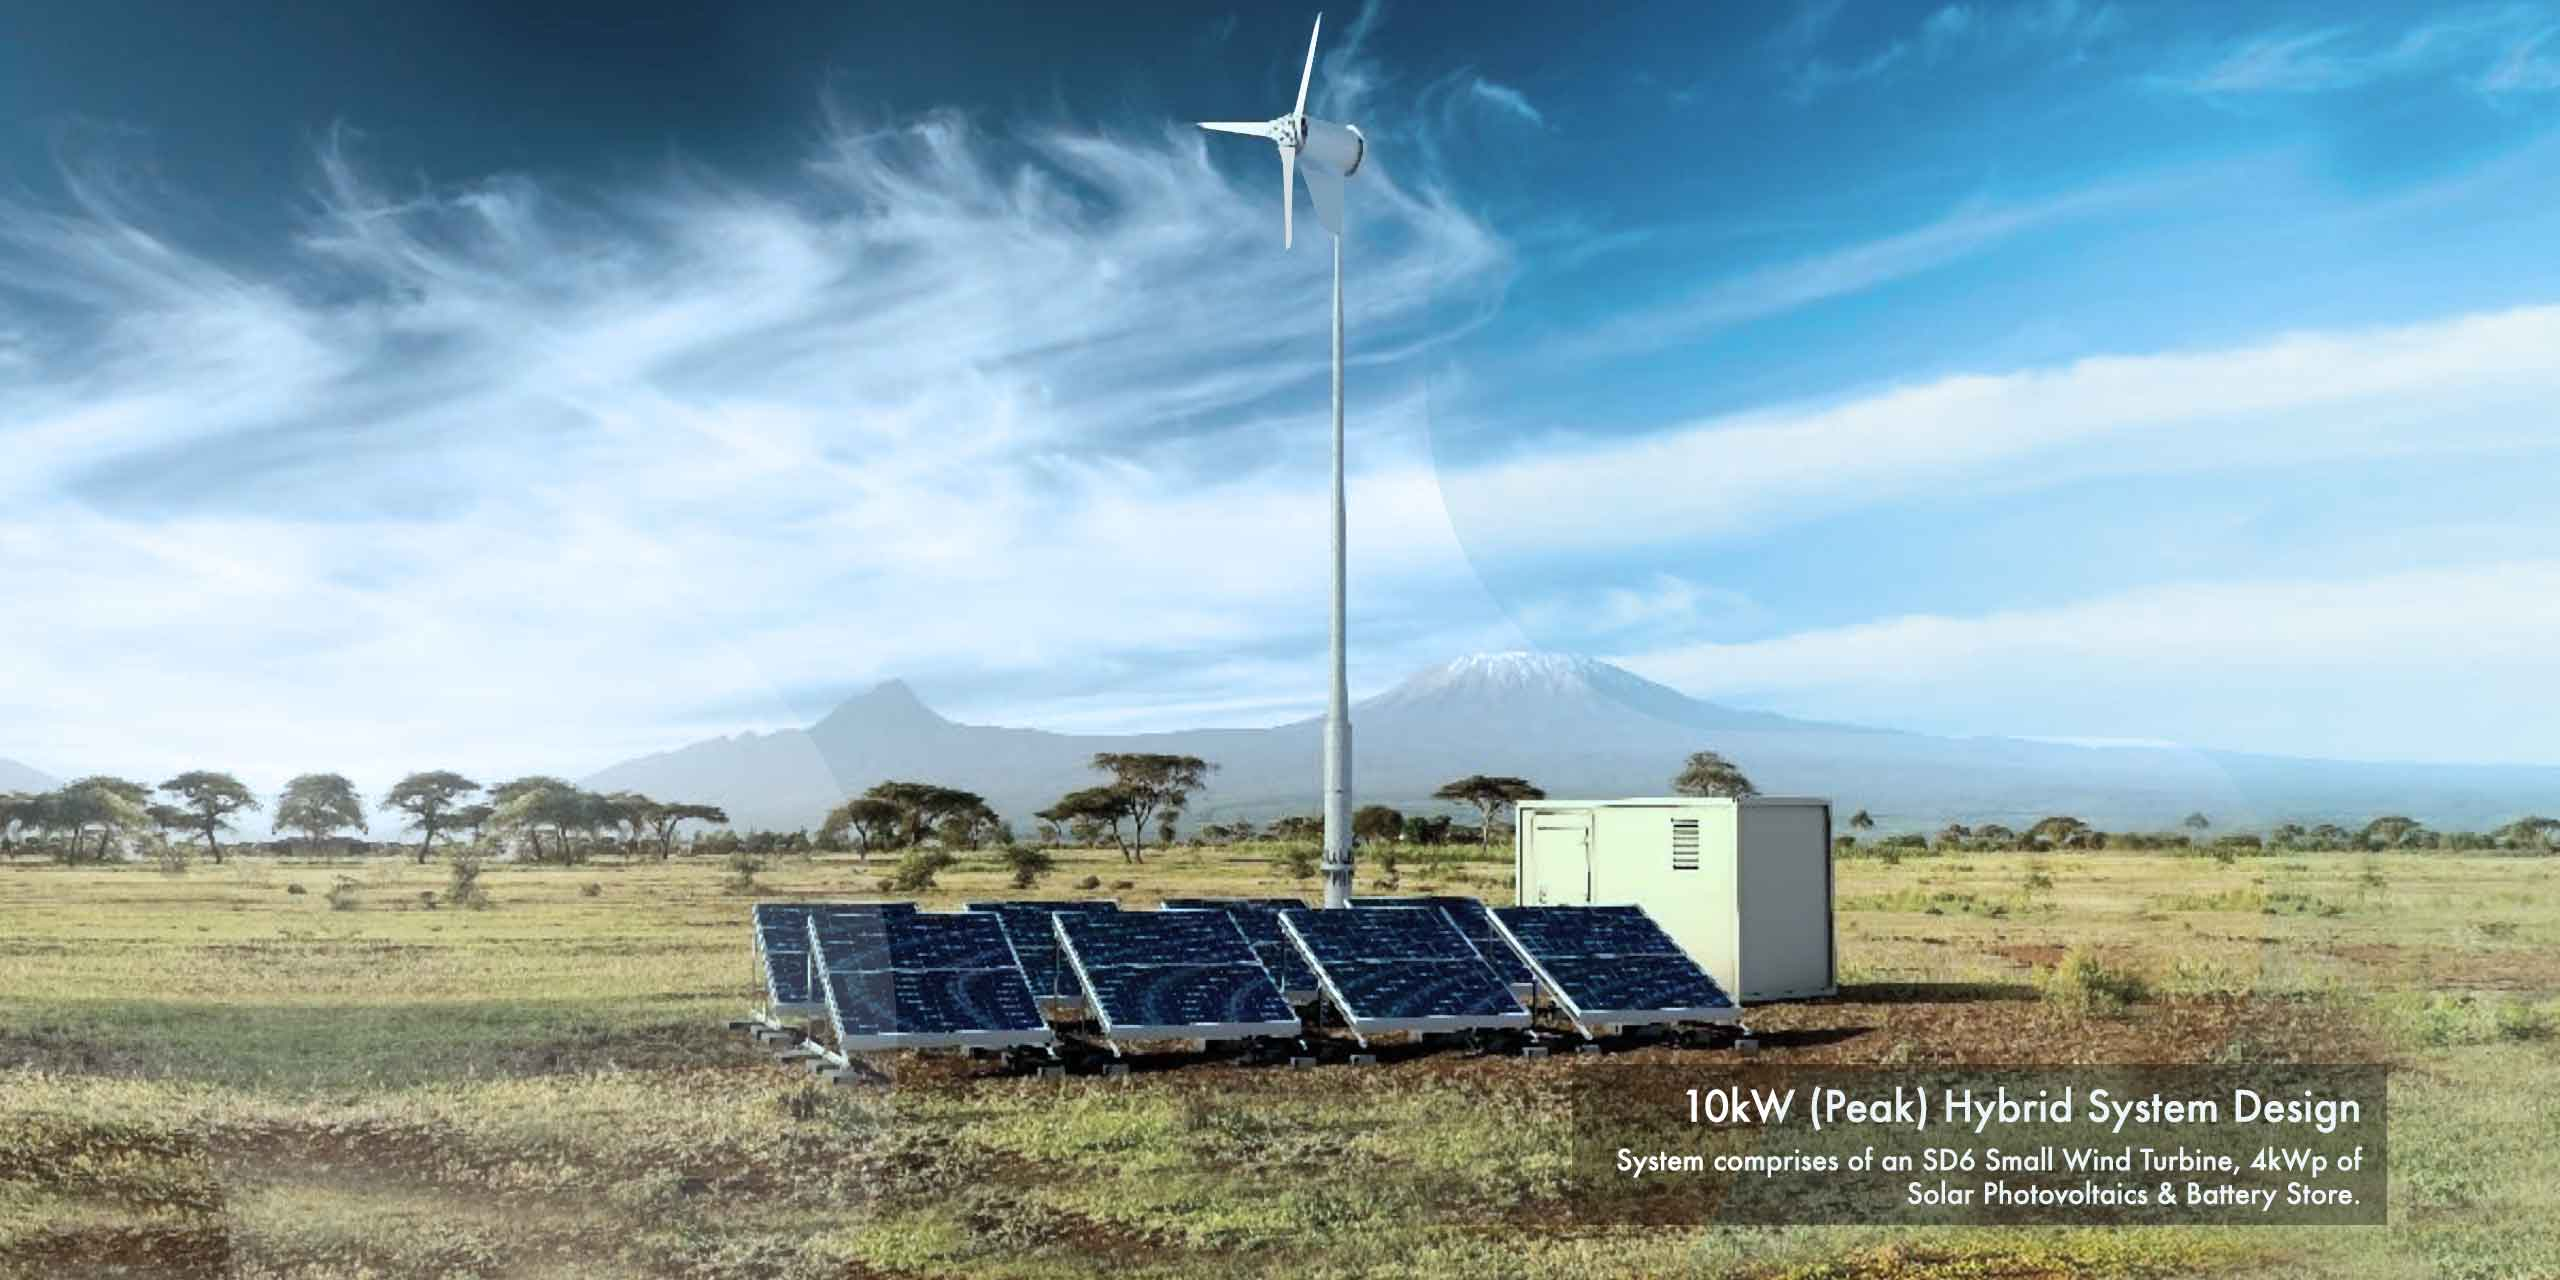 Global Off-Grid Specialists